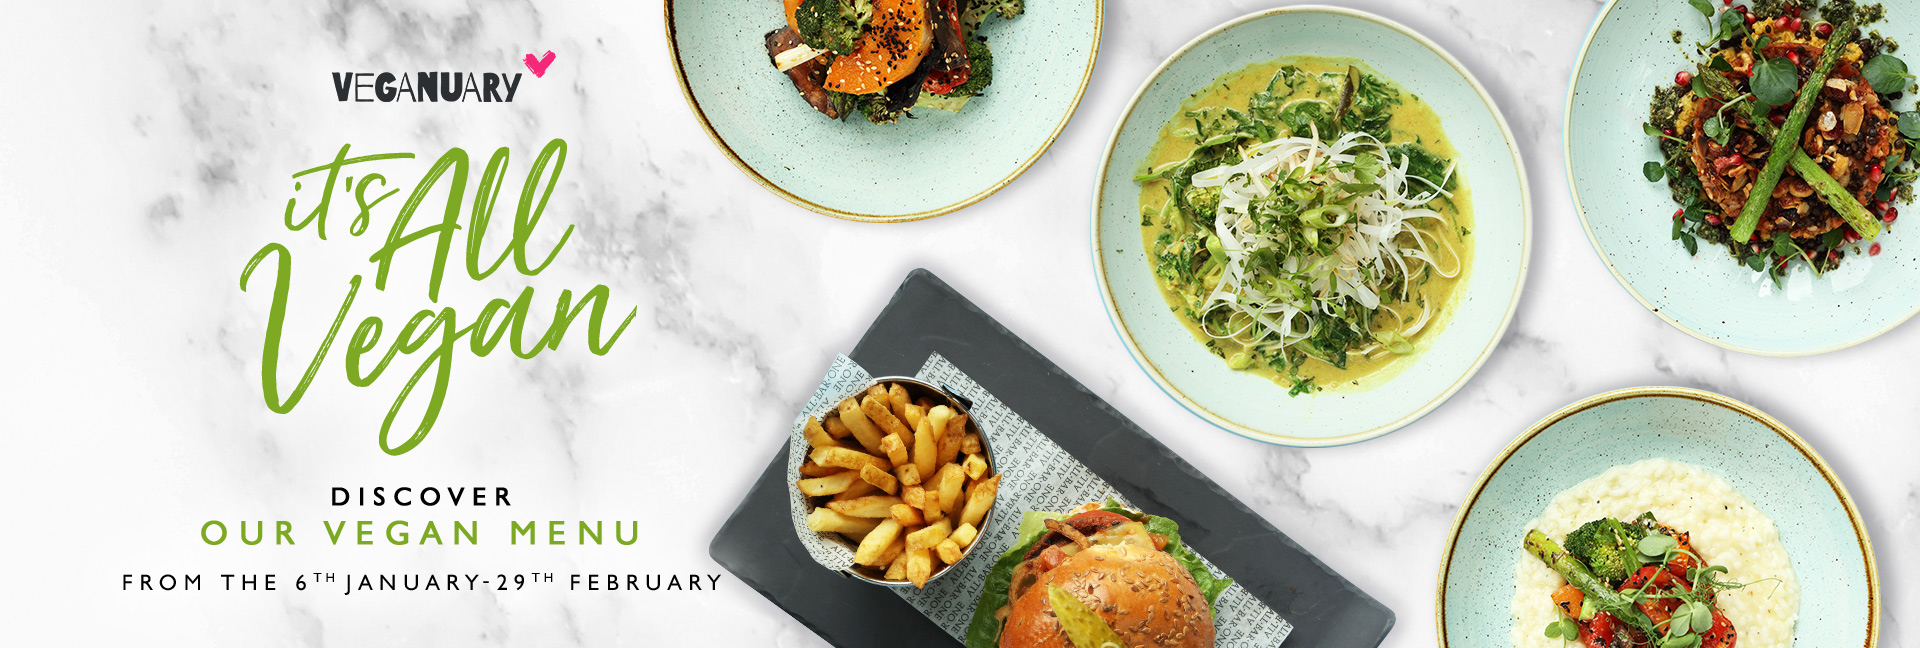 Veganuary Menu at All Bar One Wimbledon